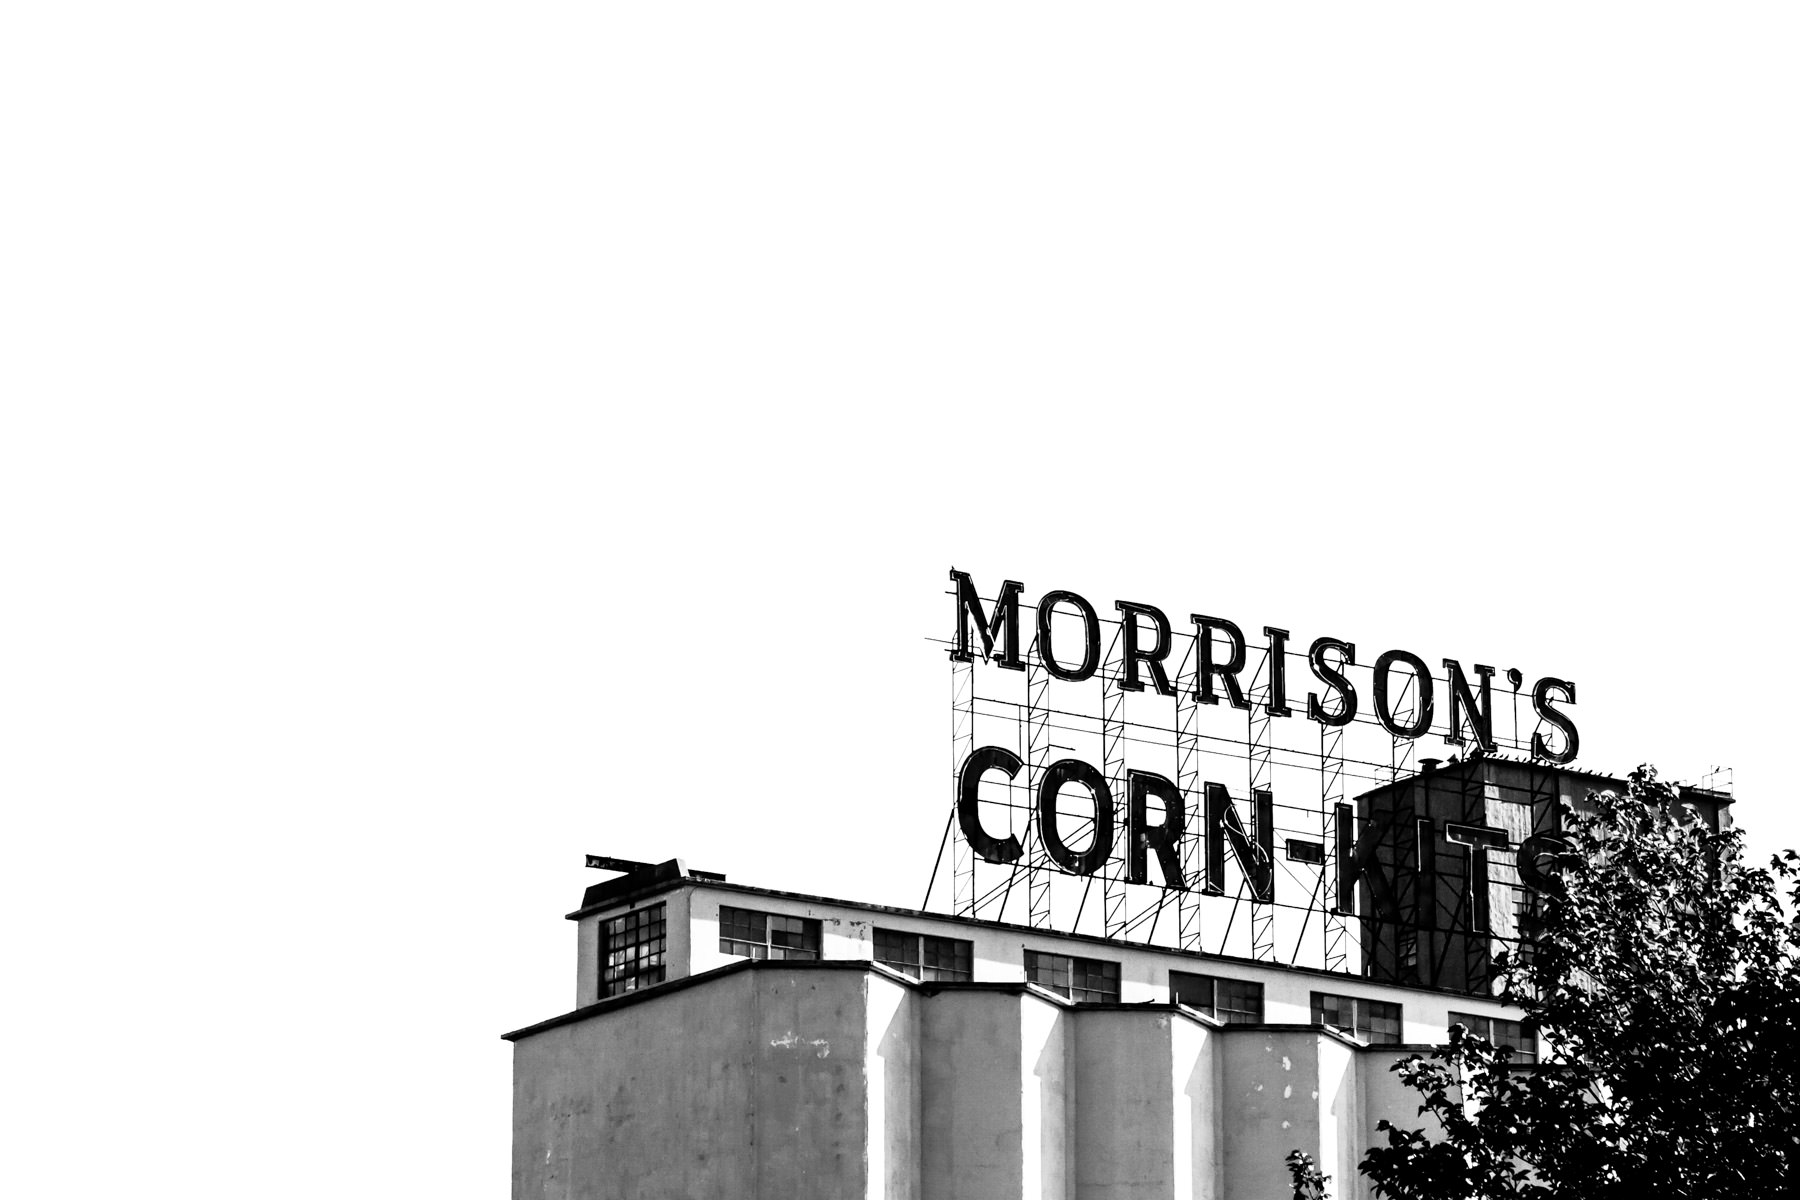 The sign for Morrison's Corn-Kits atop a grain silo in Denton, Texas.